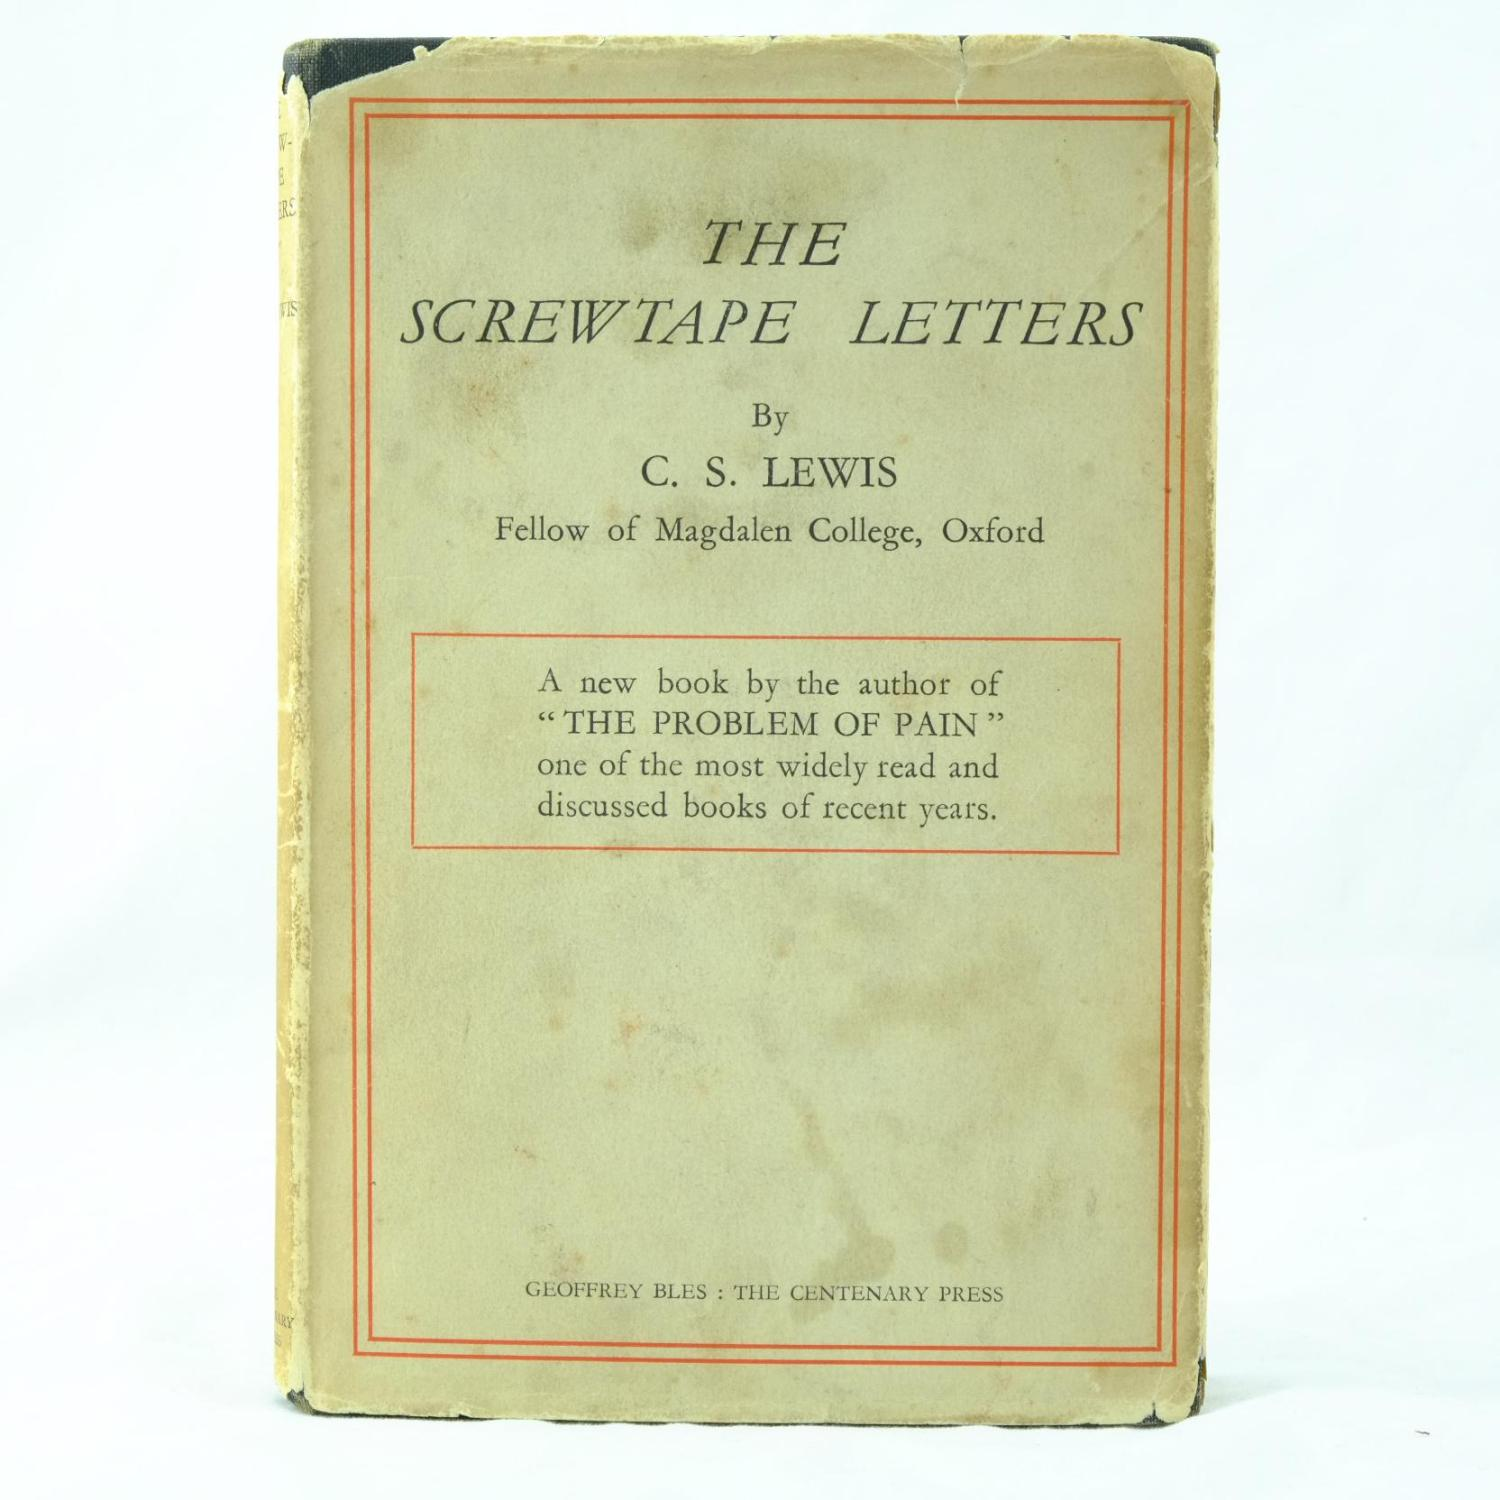 The Screwtape Letters by C S Lewis Geoffrey Bles London